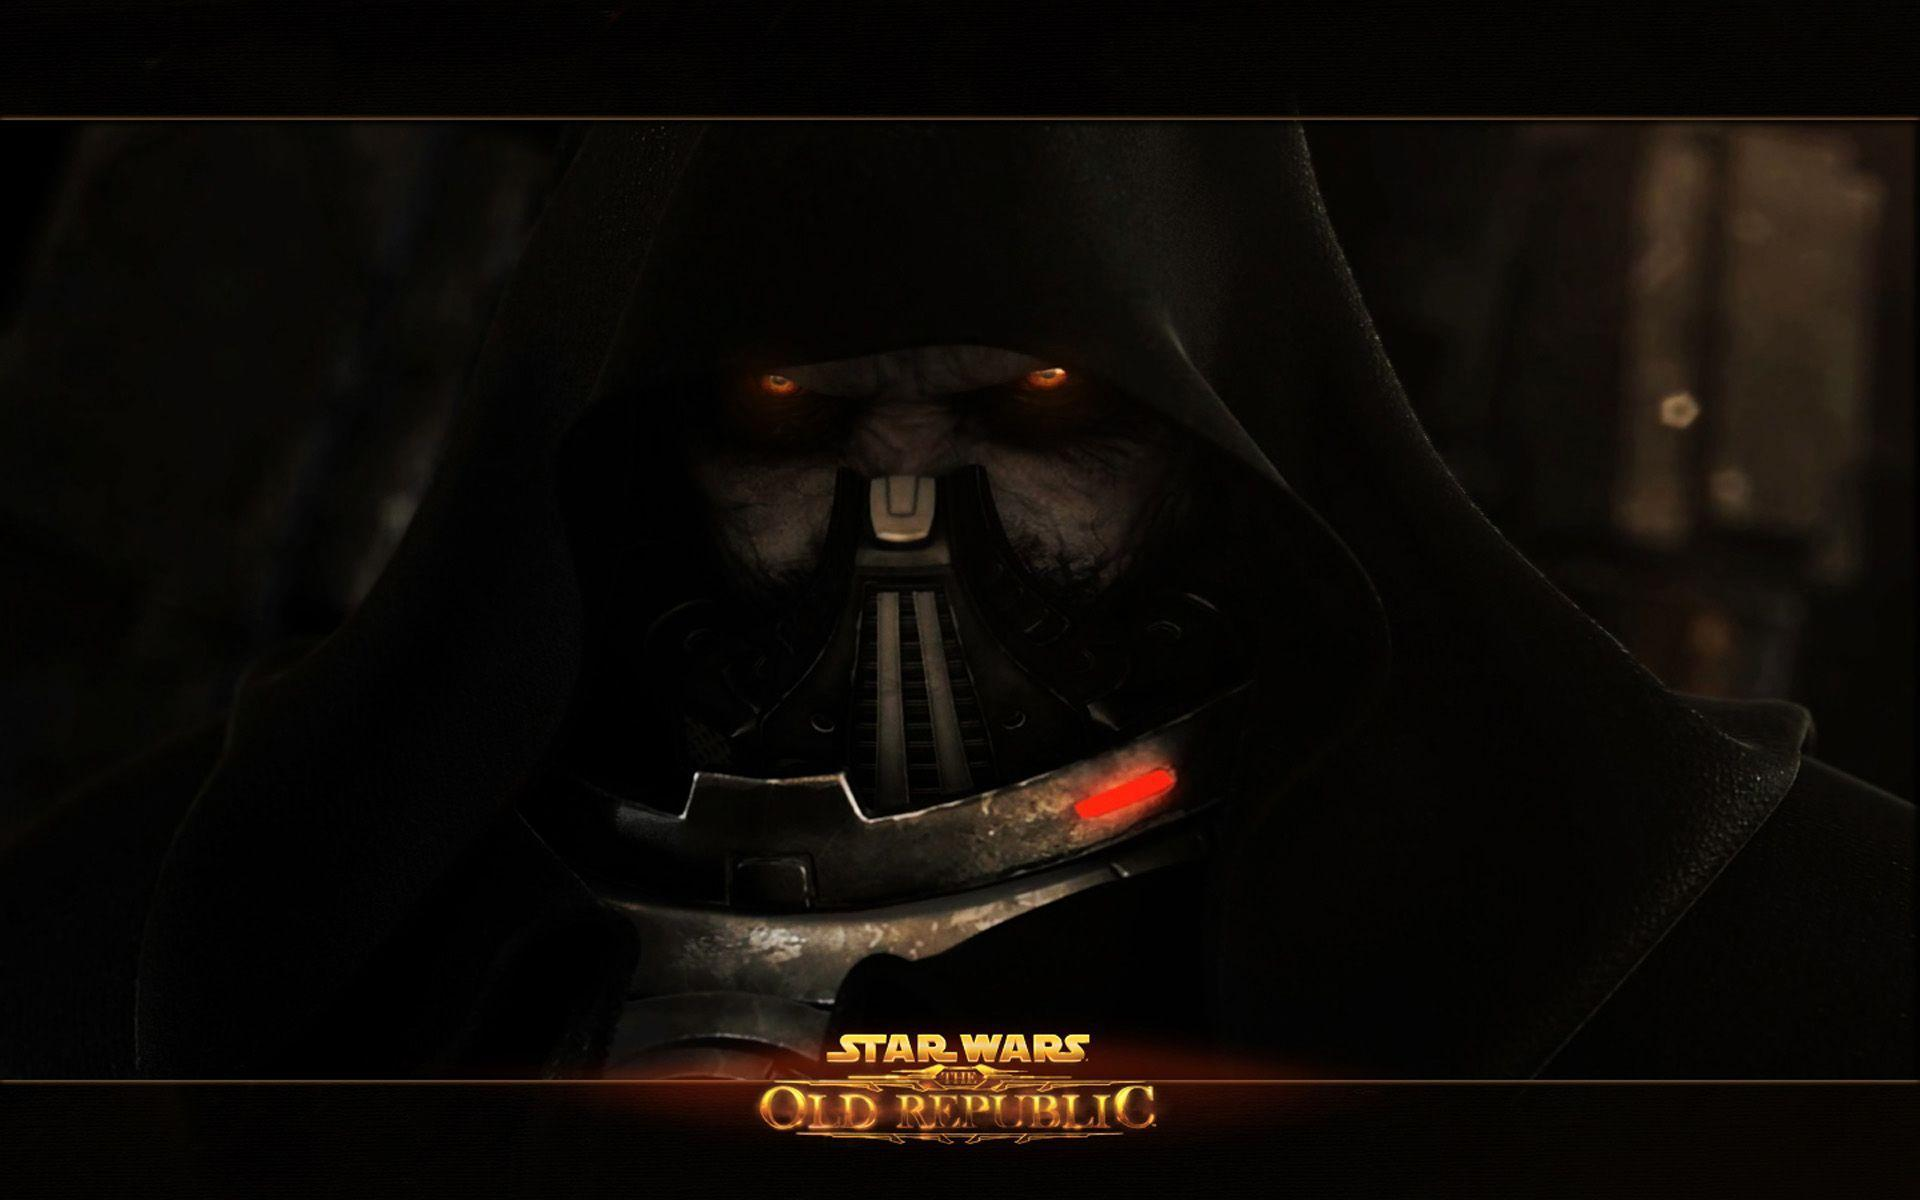 star wars the old republic wallpapers full hd wallpaper search